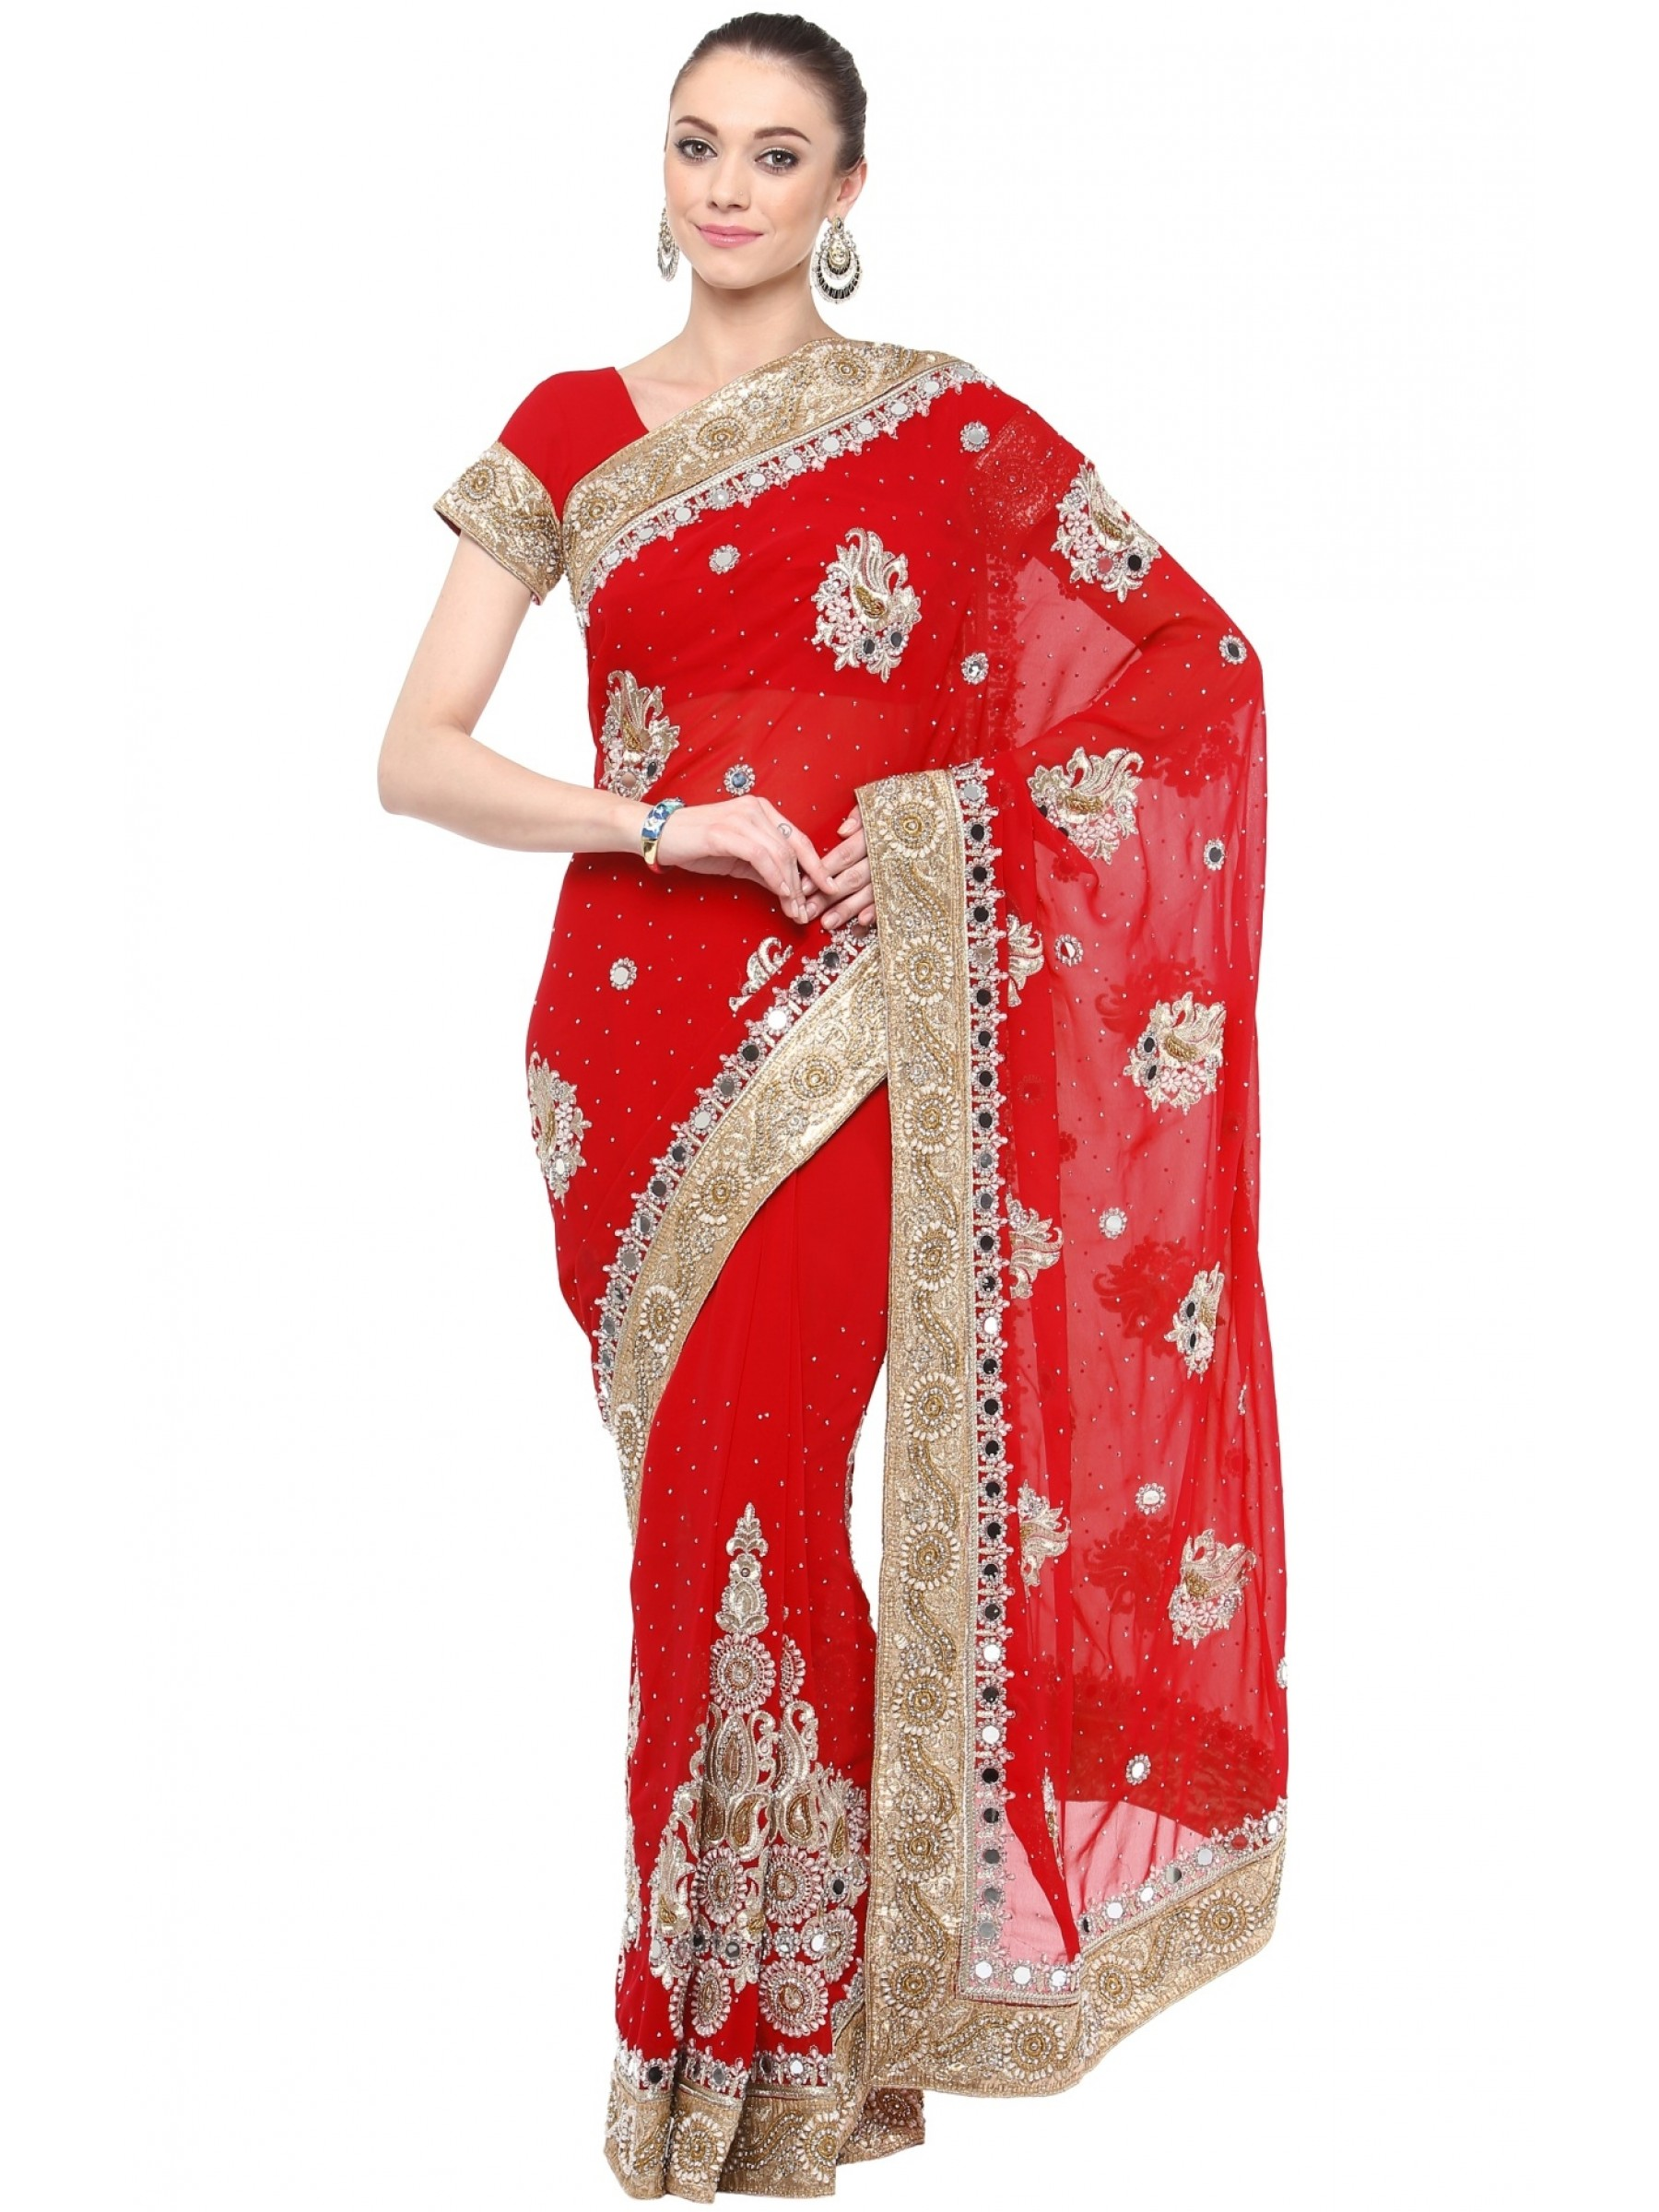 Georgette Wedding Wear Saree In Red With Embroidery & Crystals Stone Work